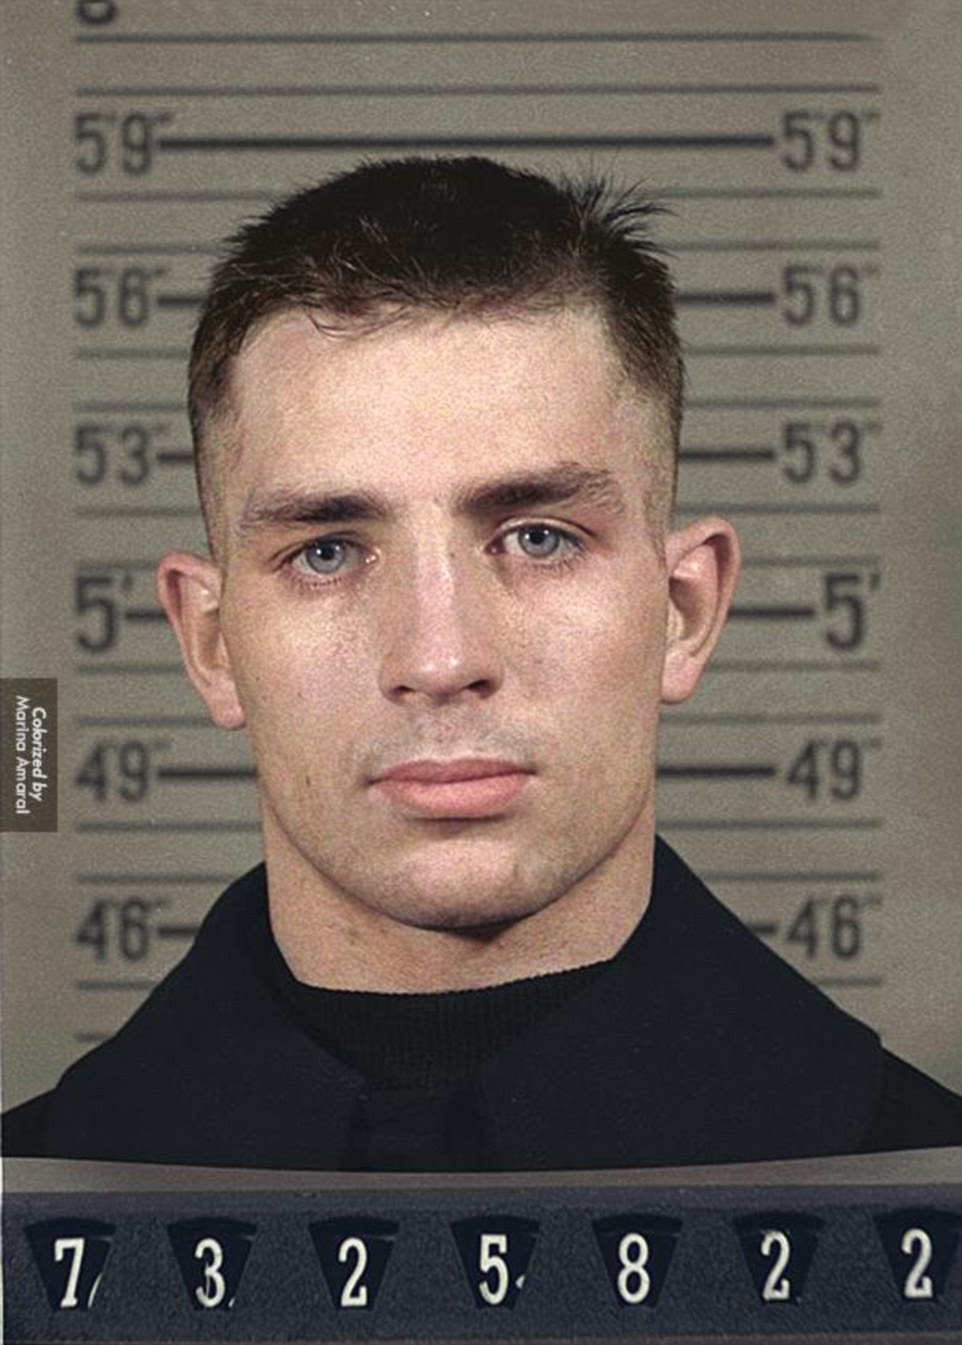 Literary hero: Jack Kerouac, an American novelist and poet, is pictured here in his naval reserve mugshot.In the summer of 1942, Kerouac - after dropping out of Columbia University - signed up for the merchant marine and shipped out aboard the U.S. Army Transport ship Dorchester